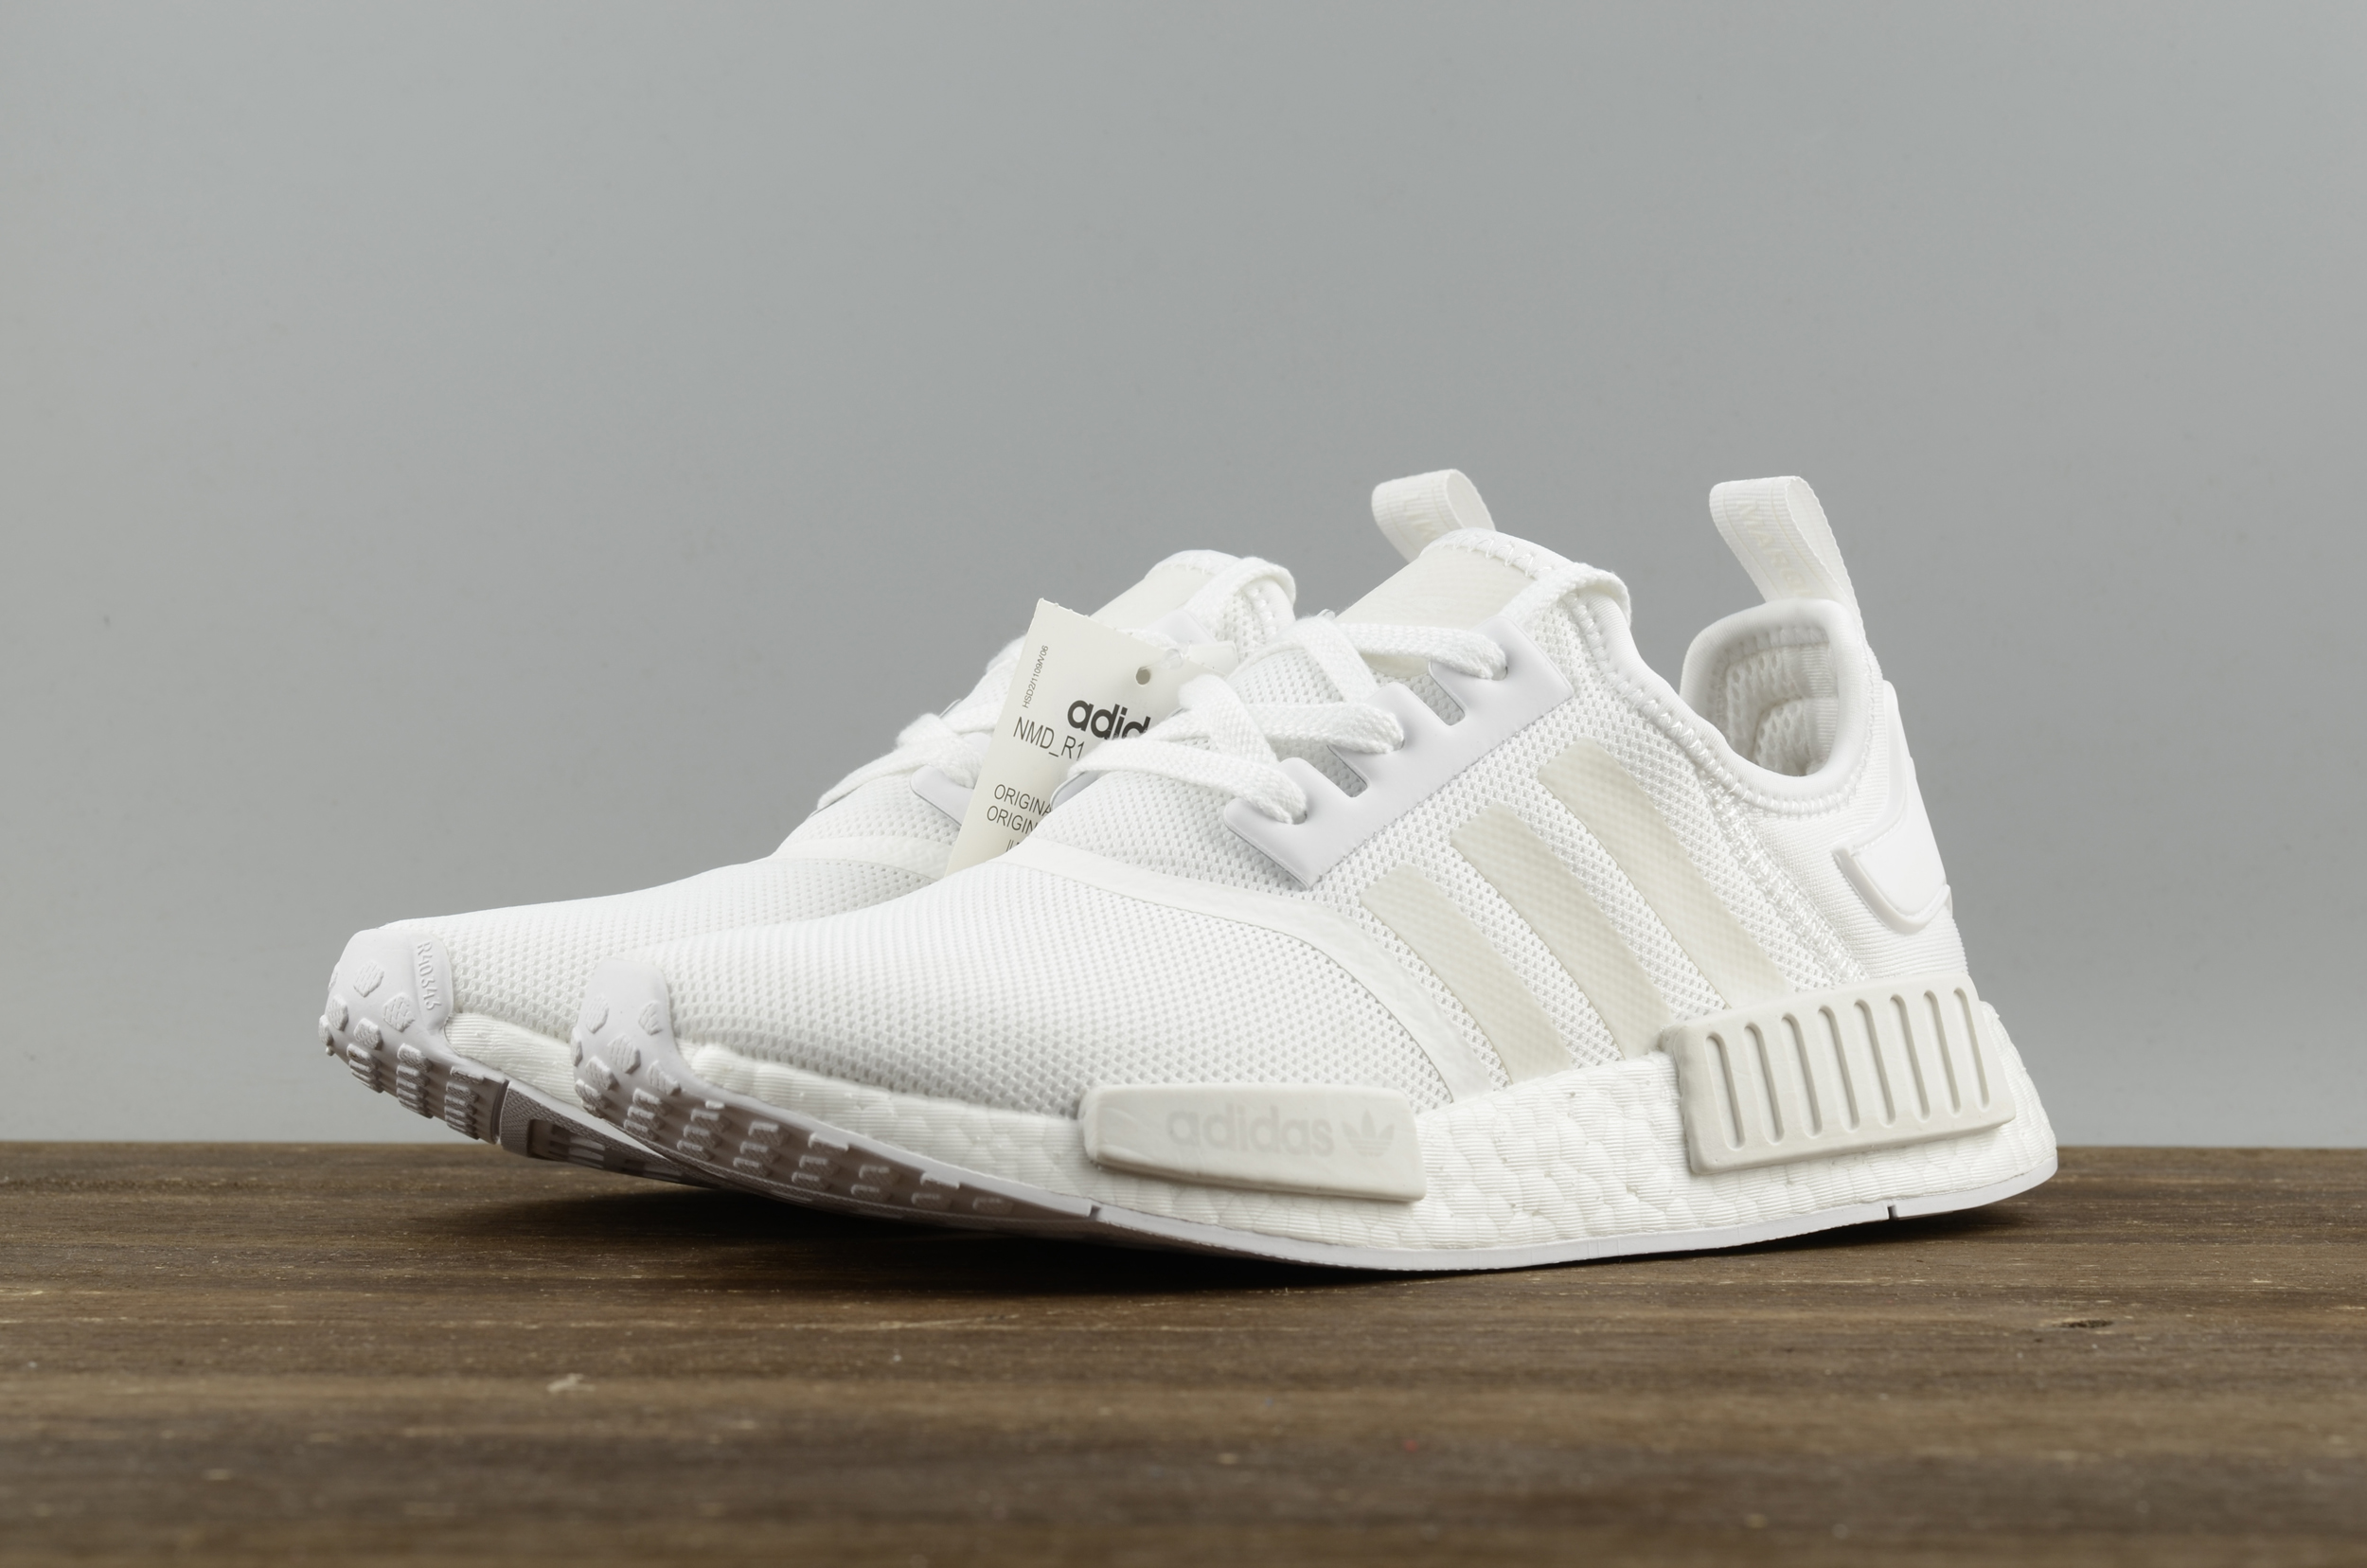 6cc28c517ecd5 ... coupon code for adidas nmd r1 boost all white runner shoes on storenvy  5afe4 1b1d7